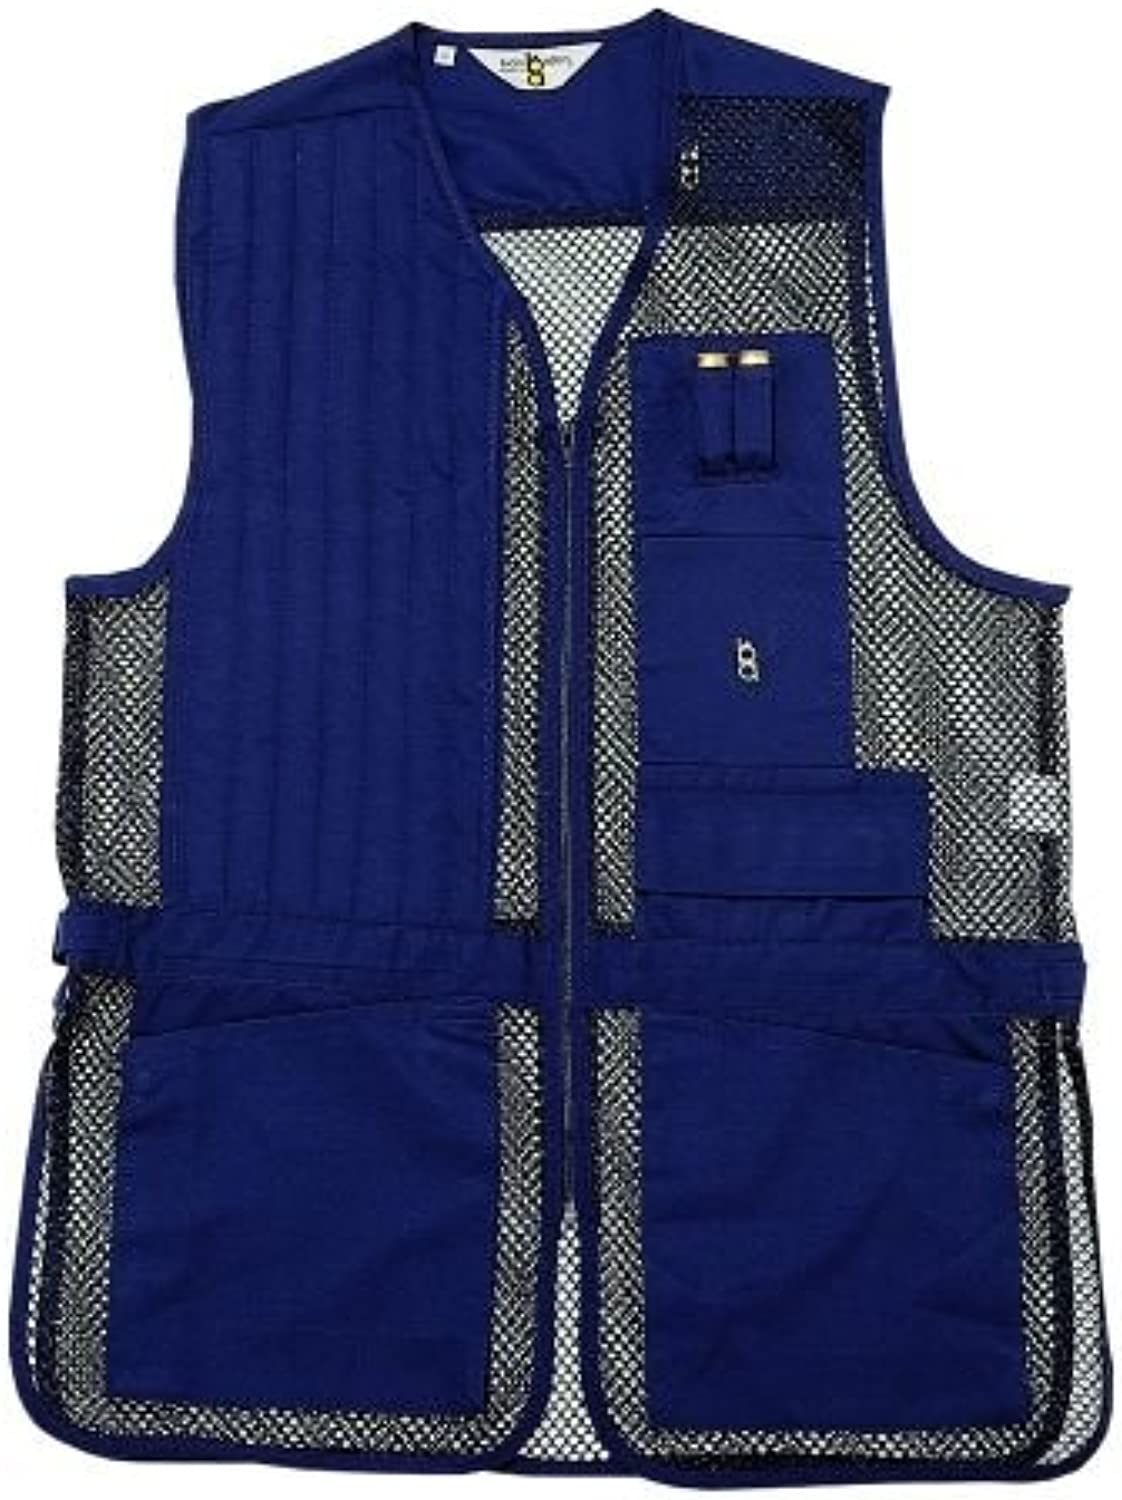 BobAllen 30259 Shooting Vest, Left Handed, Navy, XSmall